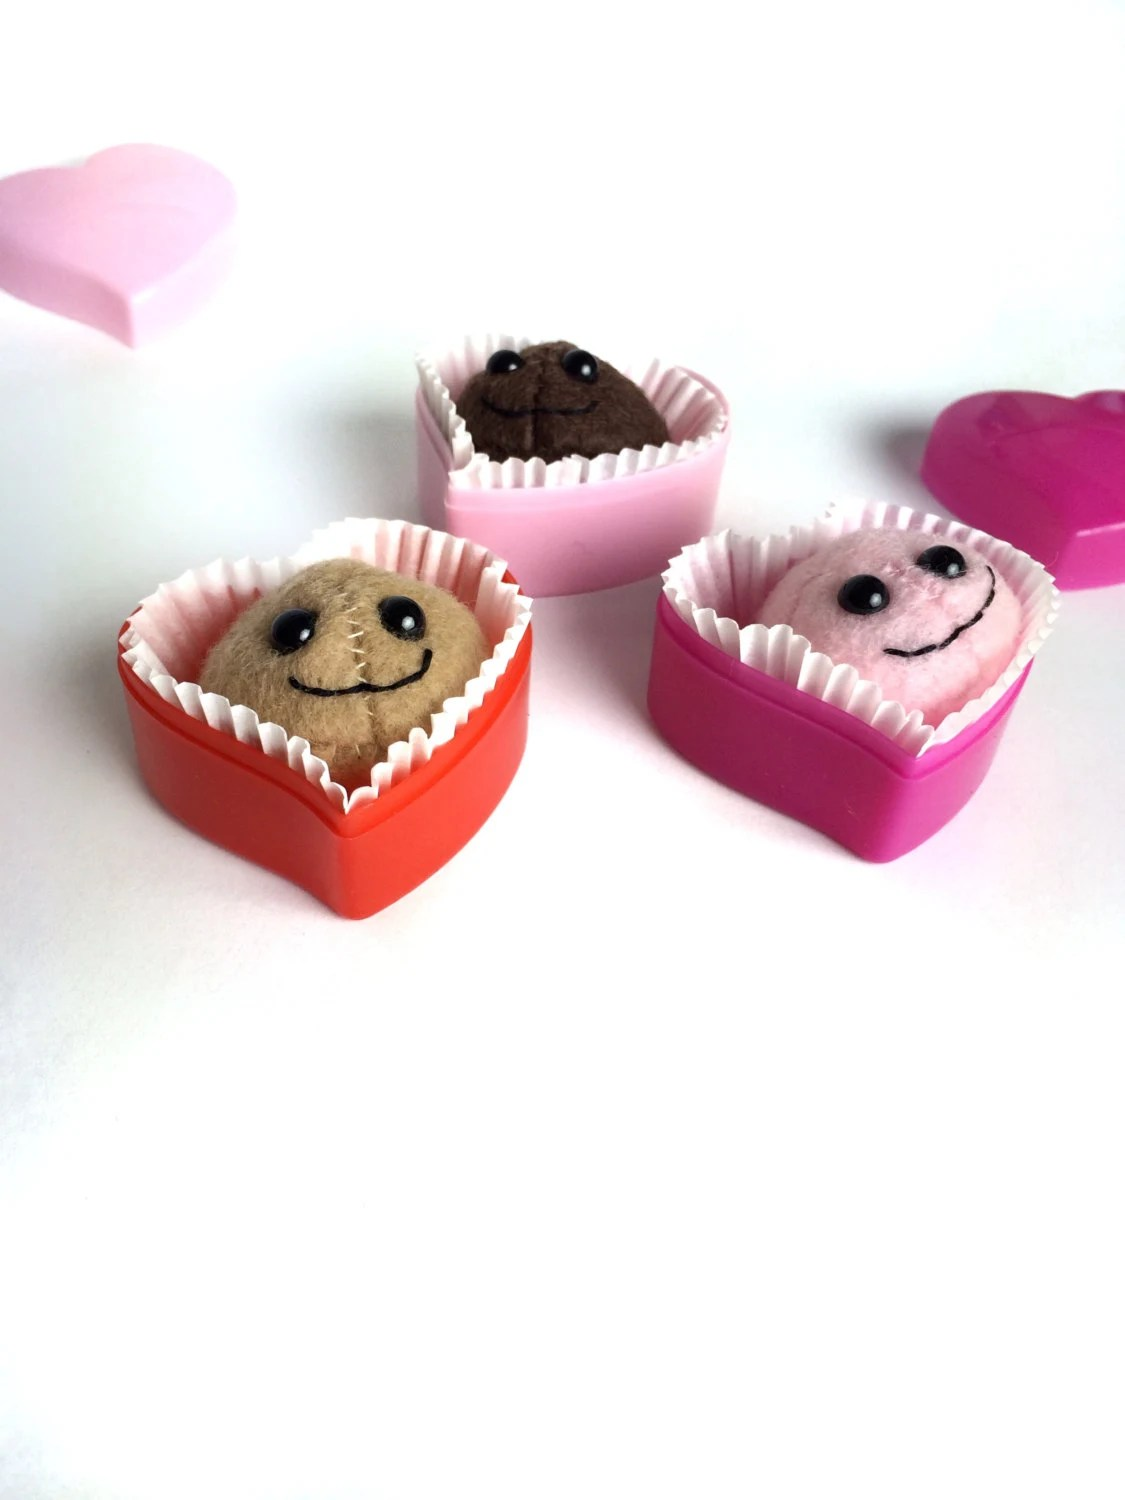 Valentine Chocolate Plush - Plush Toy Valentine in Heart Box - Gift for Him - Gift for Her - Handmade - EpicToyChest